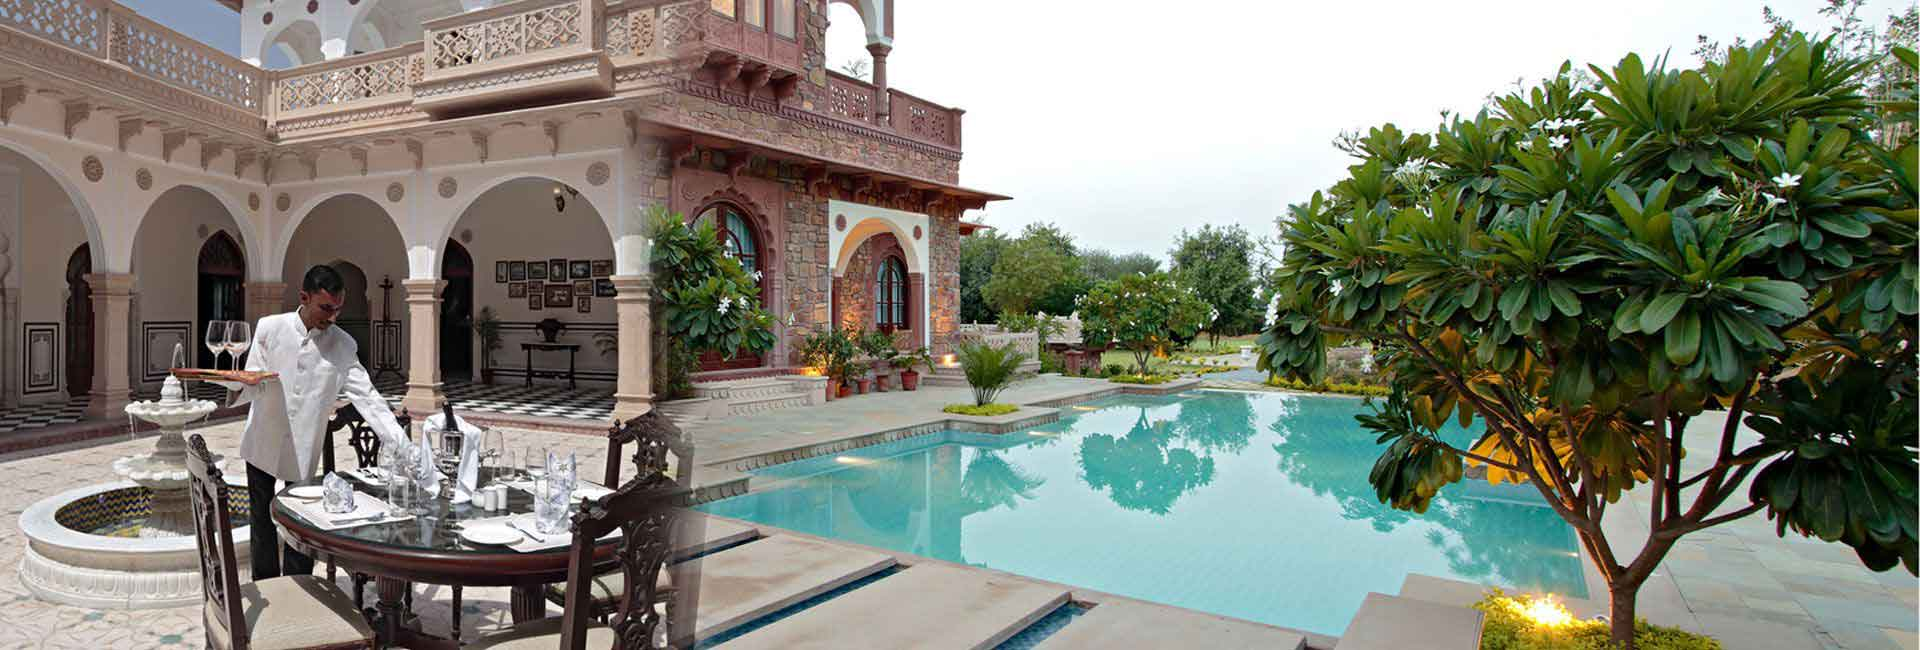 Homestay-with-Swimming-Pool-in-Jaipur1